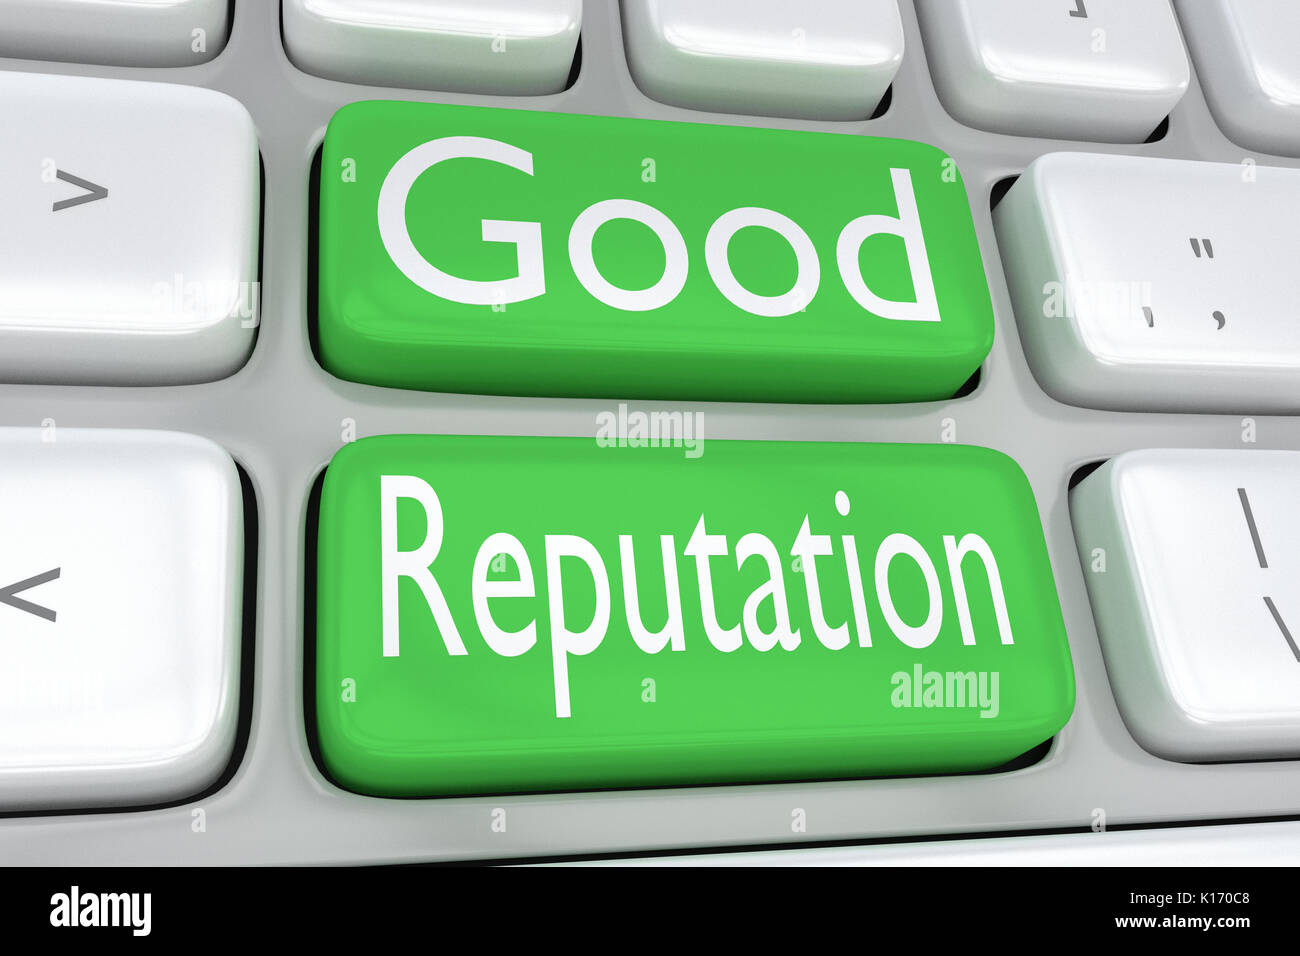 3D illustration of computer keyboard with the print 'Good Reputation' on two adjacent green buttons - Stock Image